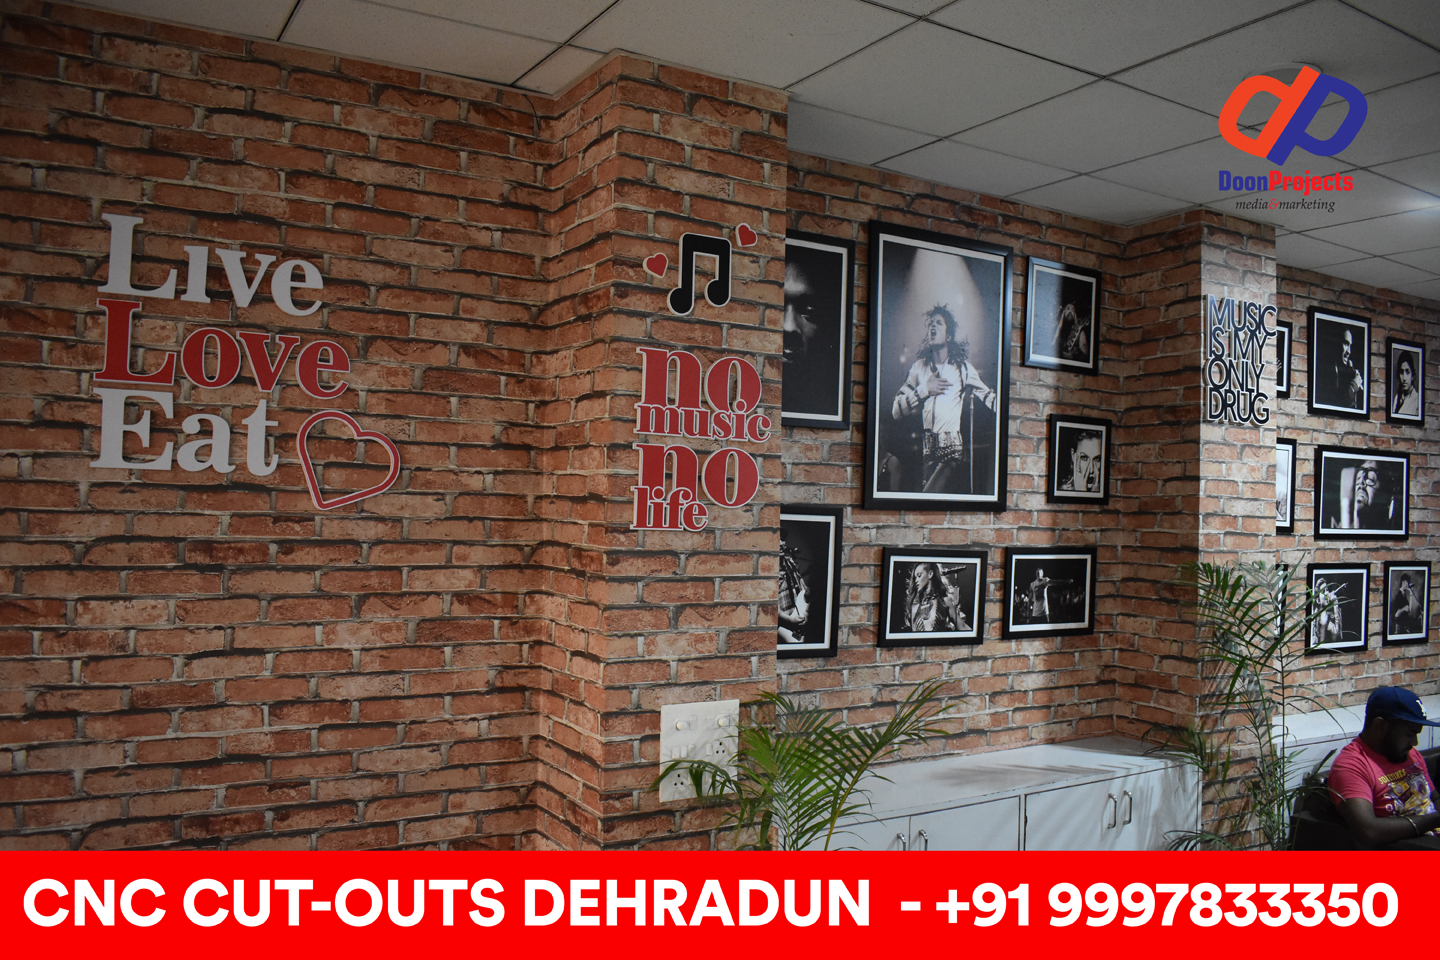 3D Sign Cutouts and Photo Frames Designed and Installed at Dehradun Based Restaurant